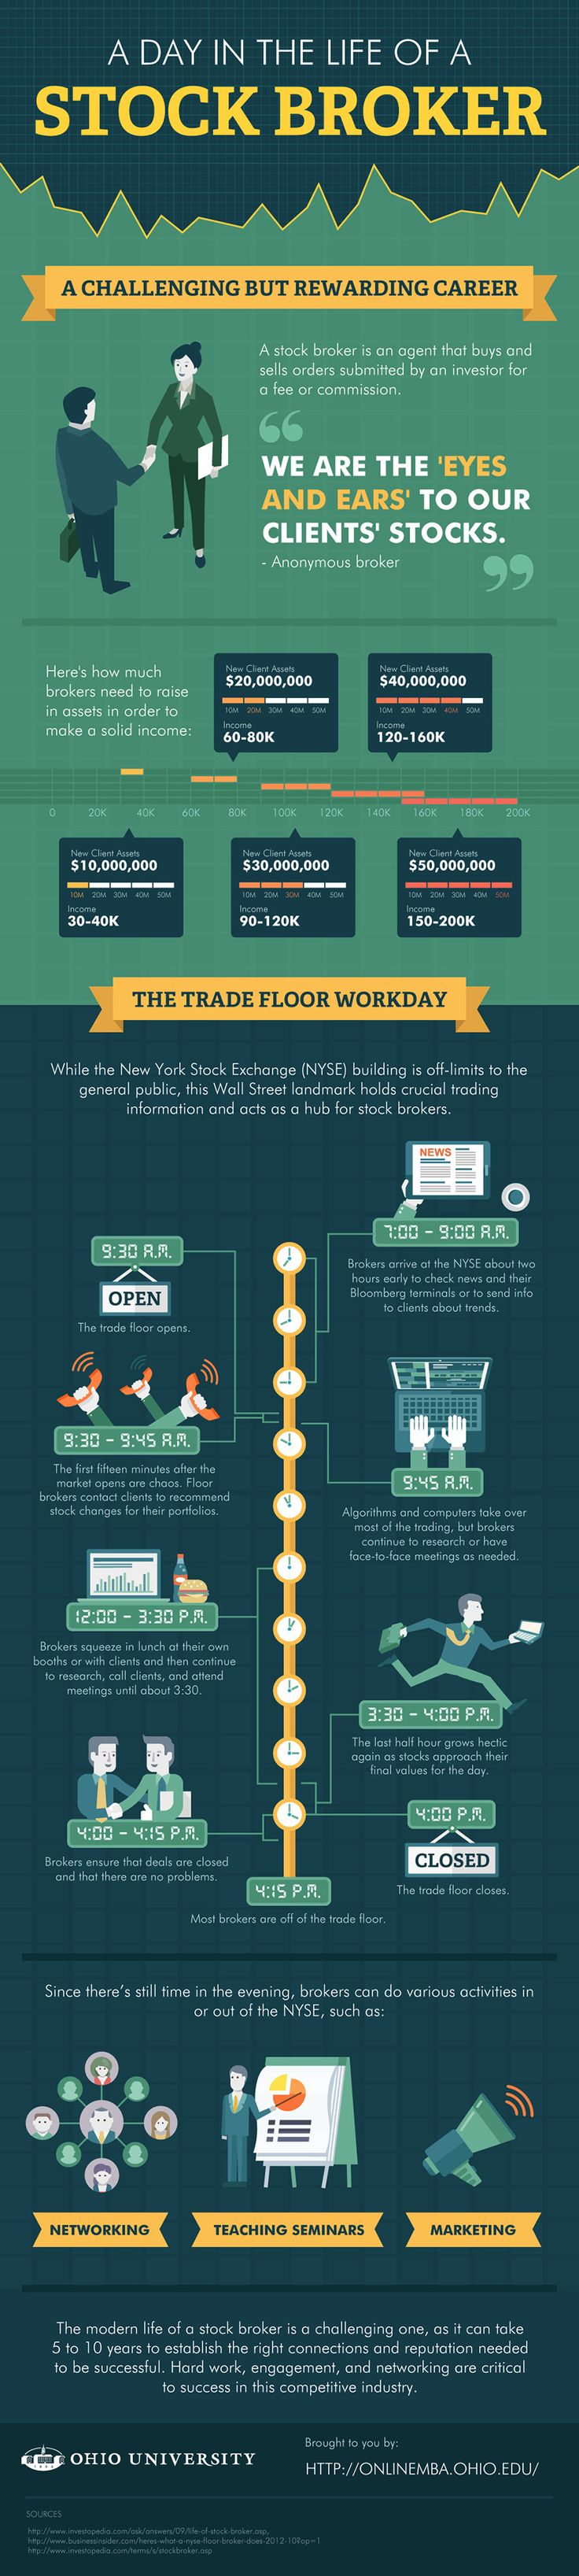 A Day in the Life of a Stock Broker #Infographic #StockBroker